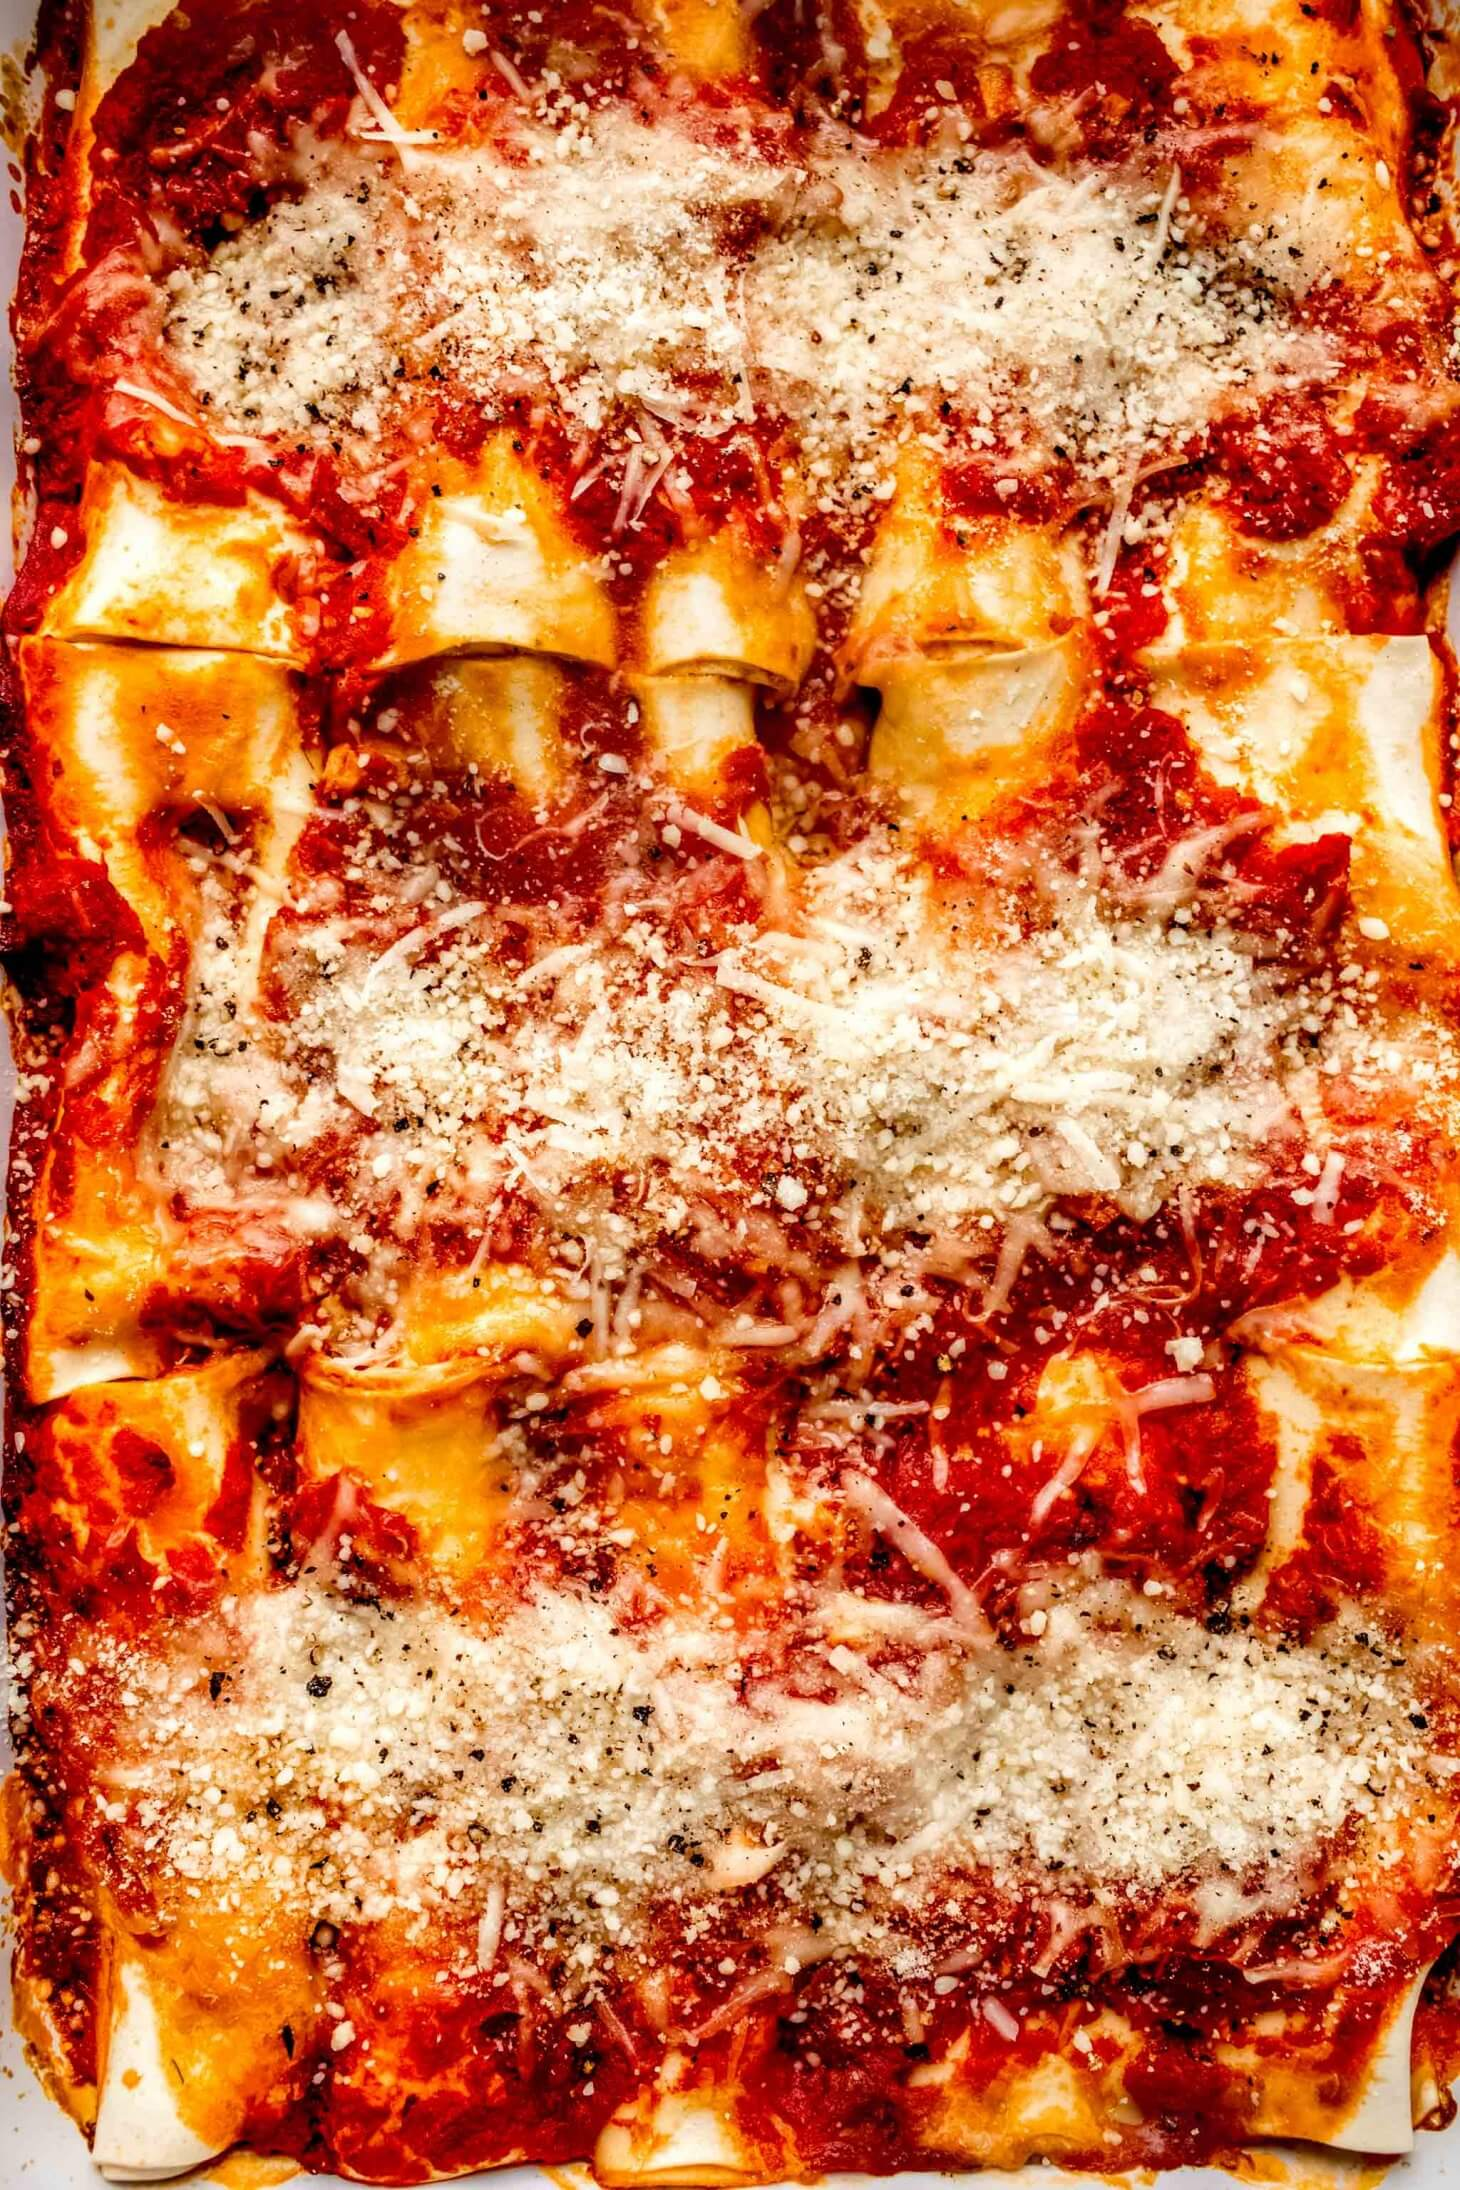 Baked manicotti topped with melted cheese, arranged in baking dish.